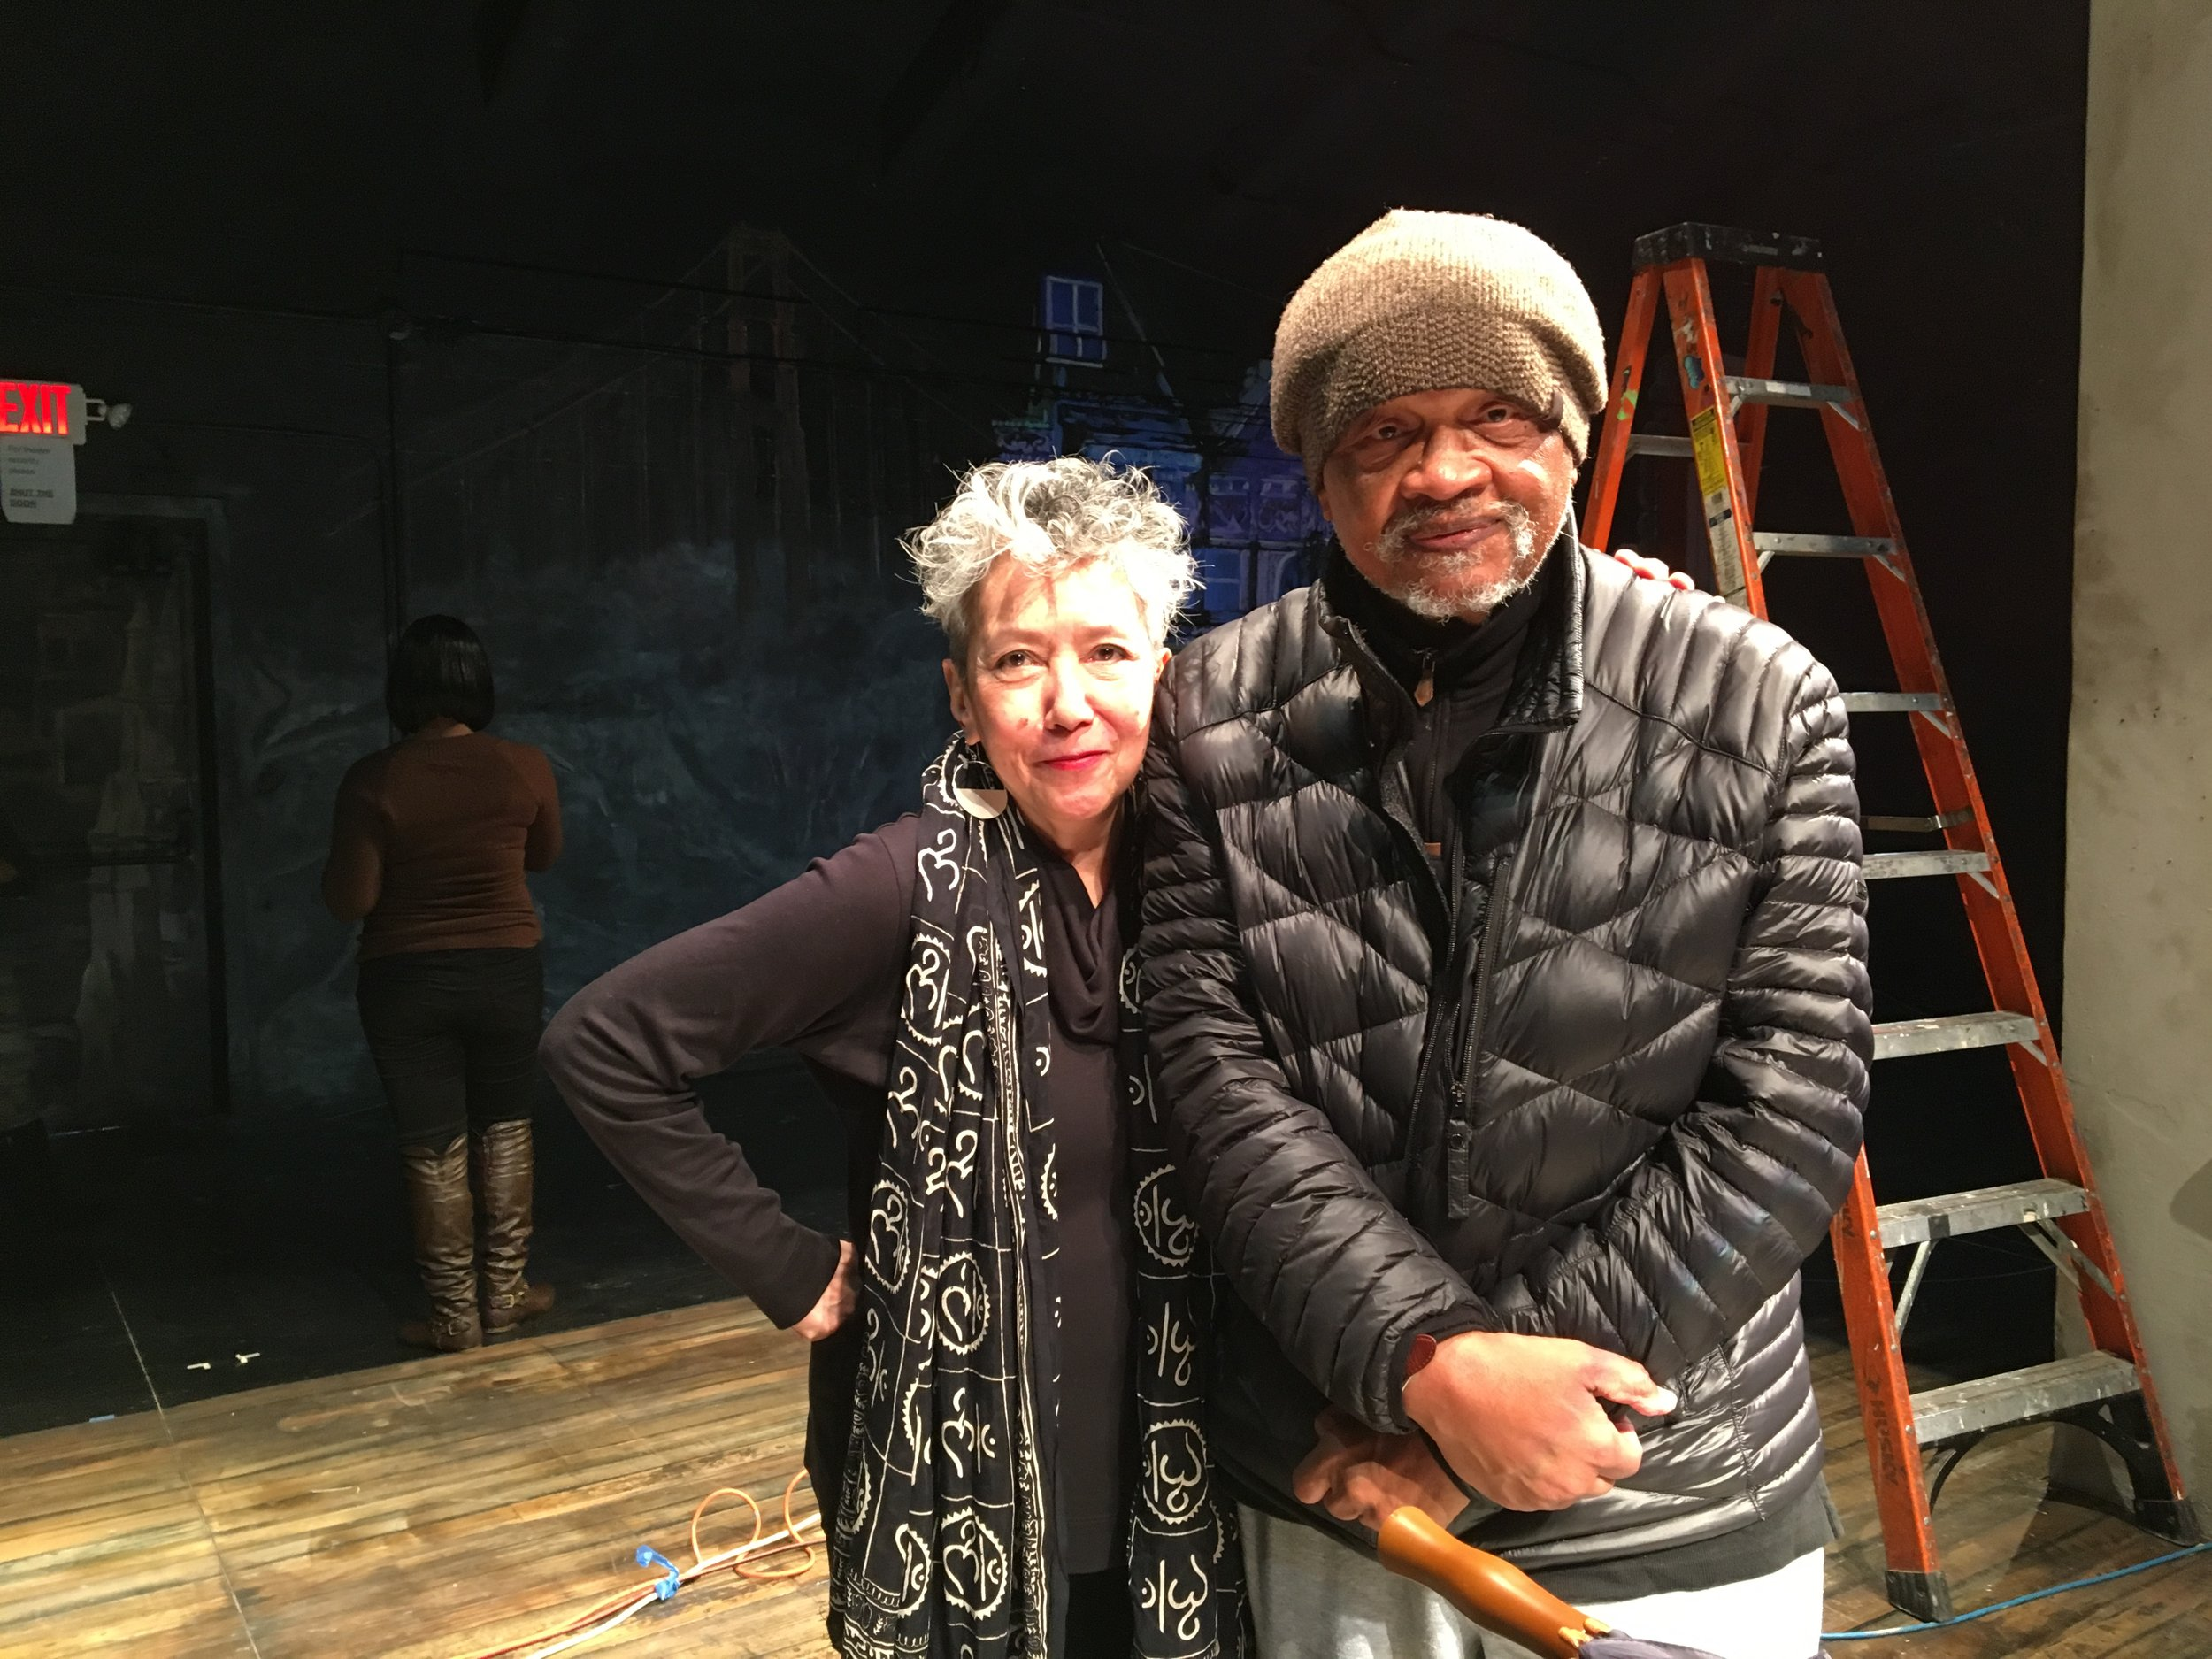 Jessica Hagedorn and Ishmael Reed. Photograph by Carla Blank.